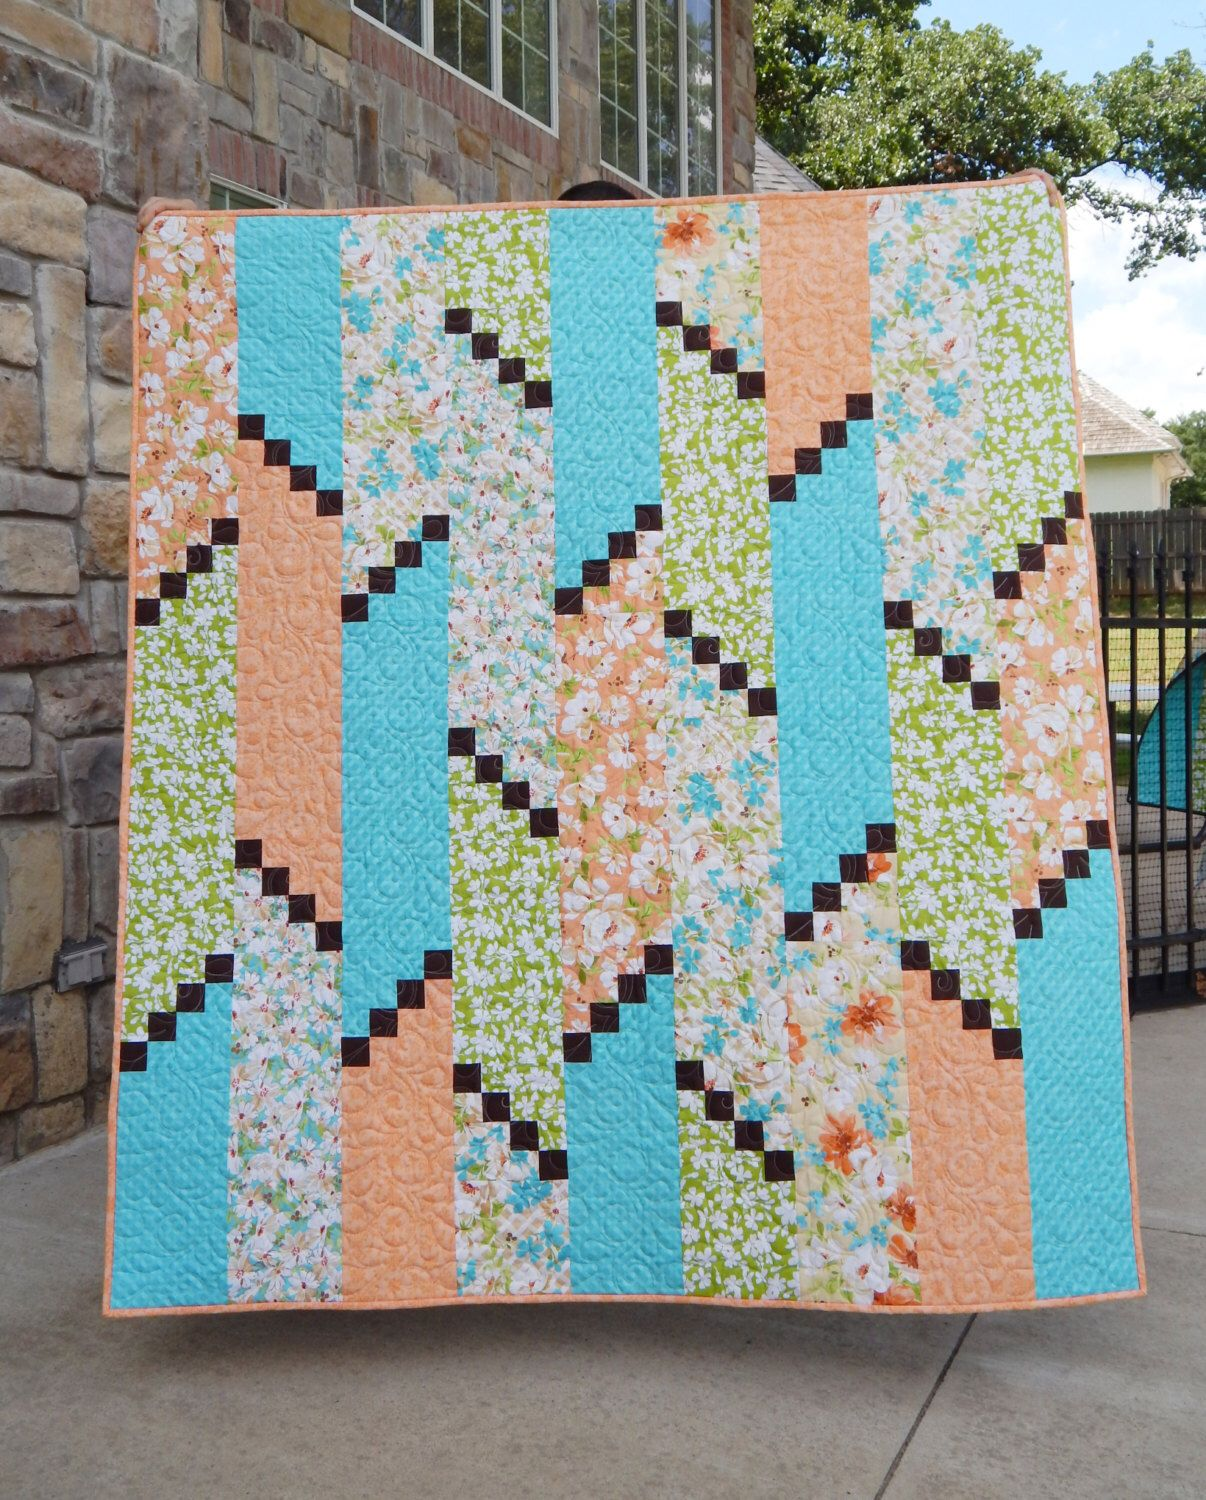 Handmade Modern Lap Quilt, Green Turquoise Orange Quilt, Flora Quilt by TheFlemingsNine on Etsy https://www.etsy.com/listing/257054814/handmade-modern-lap-quilt-green